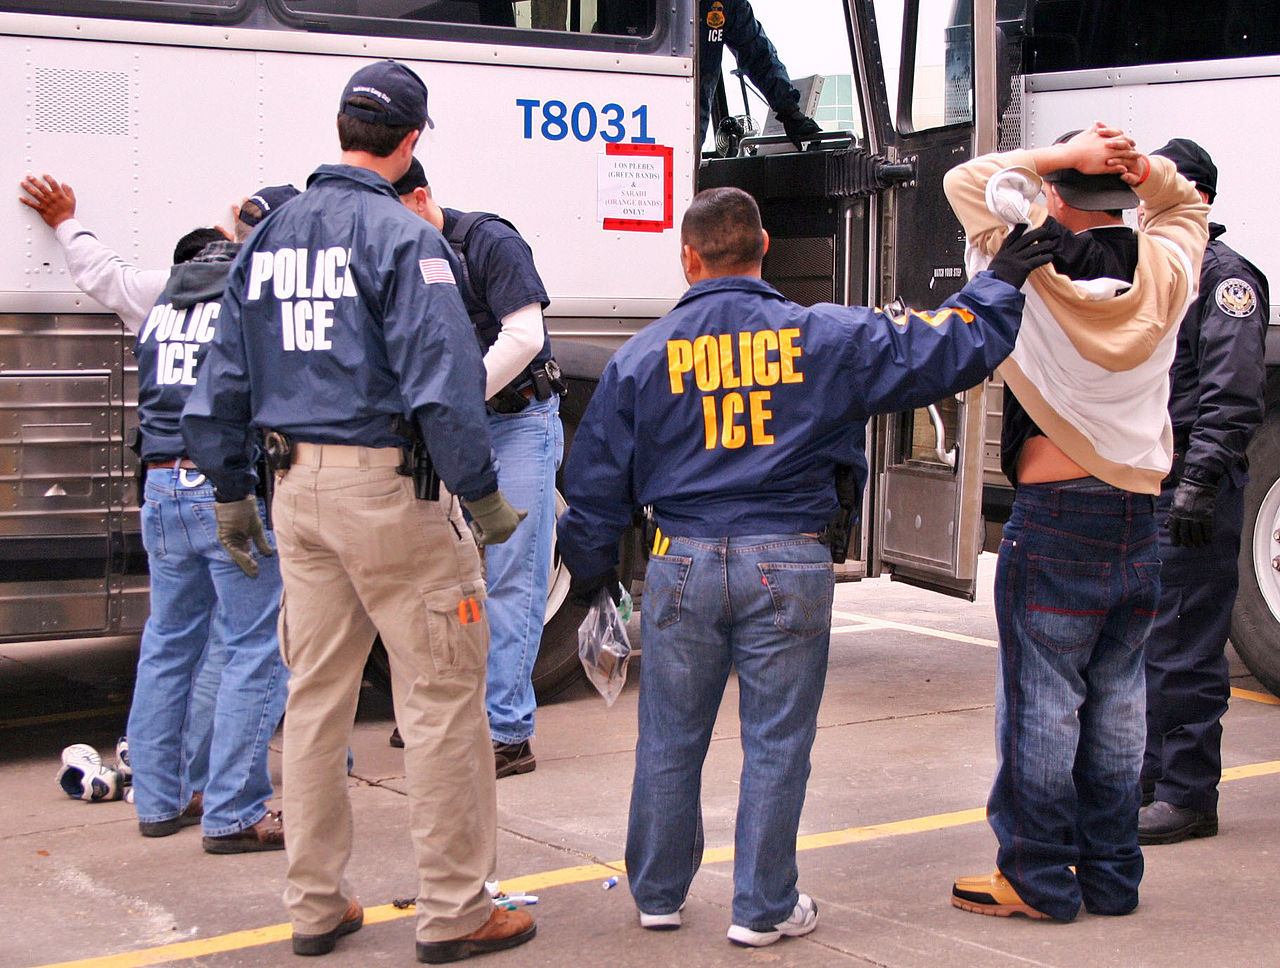 HUGE SPIKE IN ARRESTS OF CRIMINAL ILLEGAL IMMIGRANTS